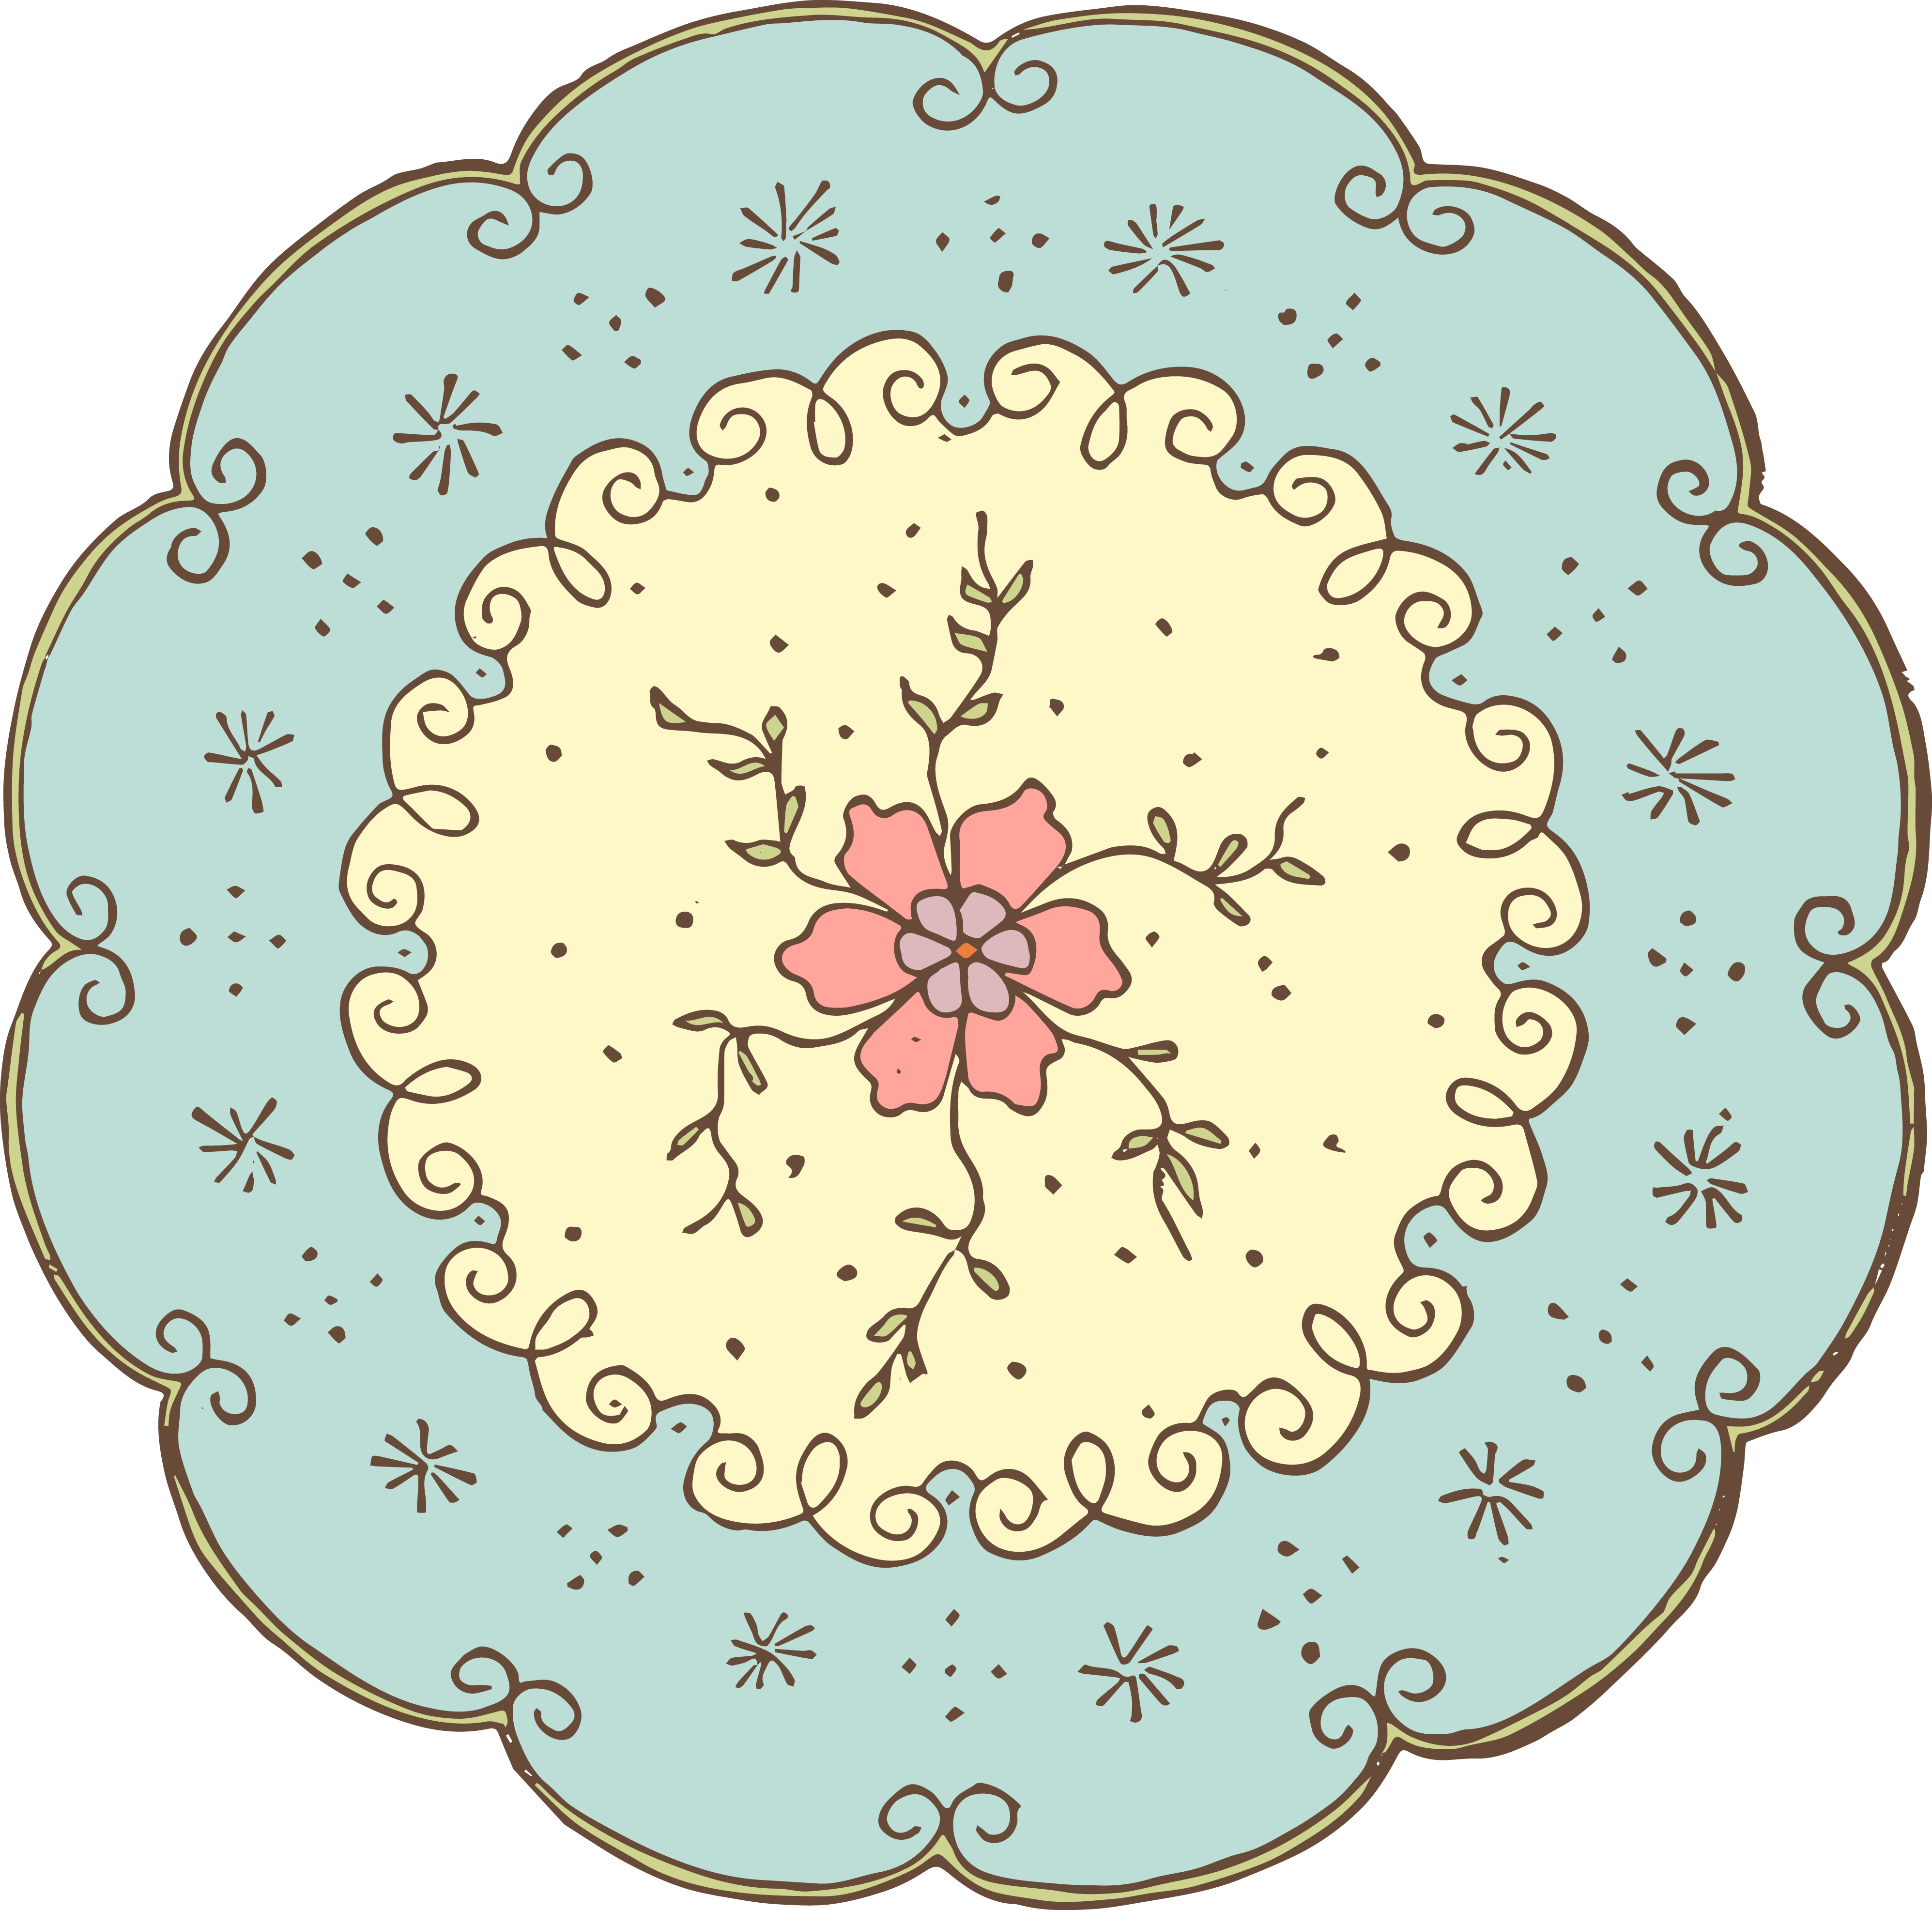 Doily transparent 10 inch. Free cliparts download clip